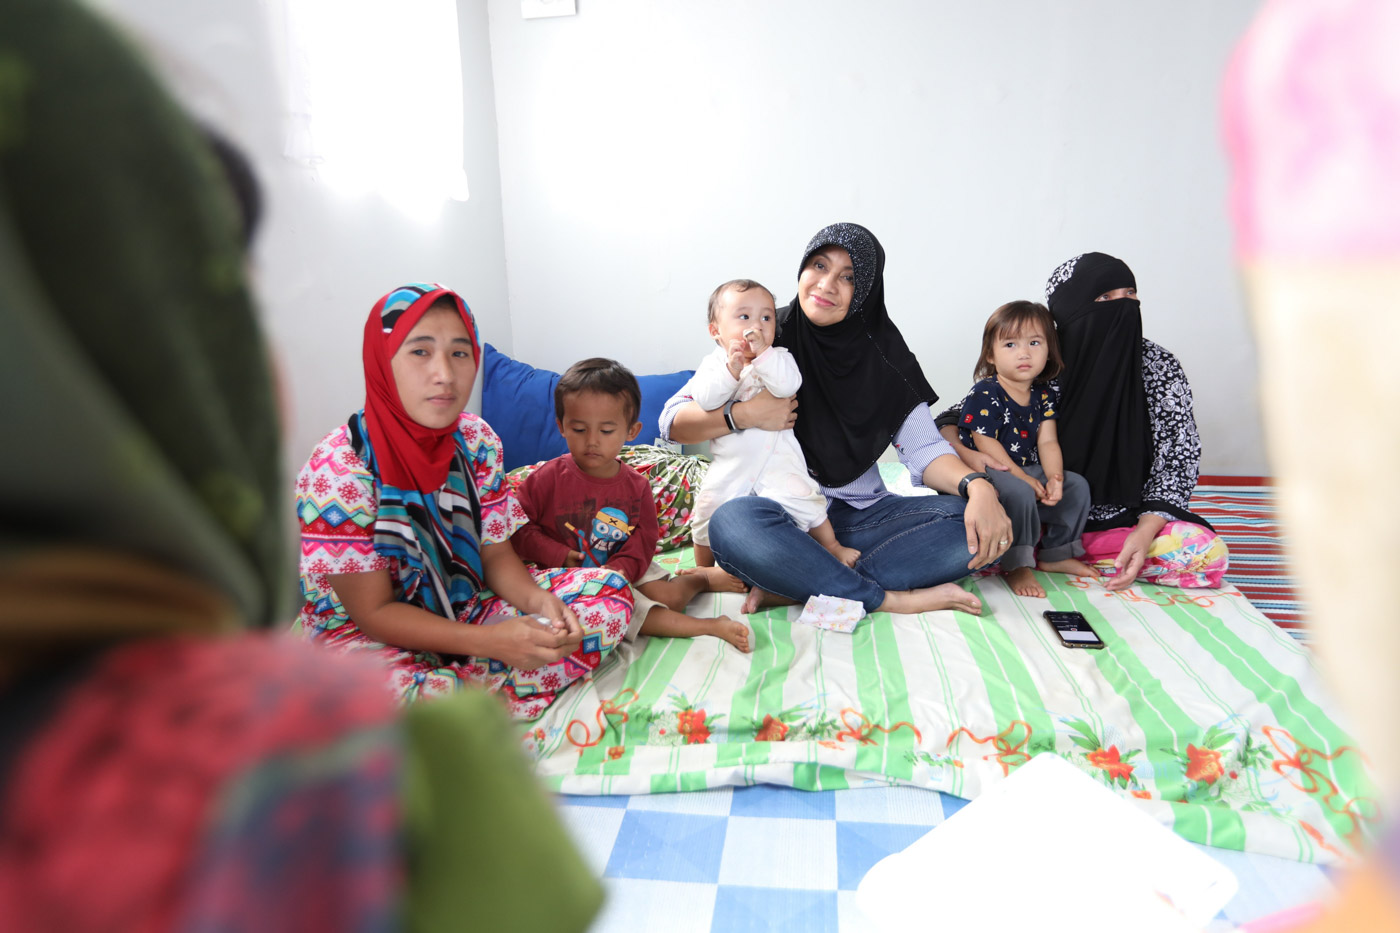 SHARING STORIES. Vice President Leni Robredo interacts with members of a family who will live in one of the housing units at the Angat Buhay Village in Marawi City. Photo from OVP